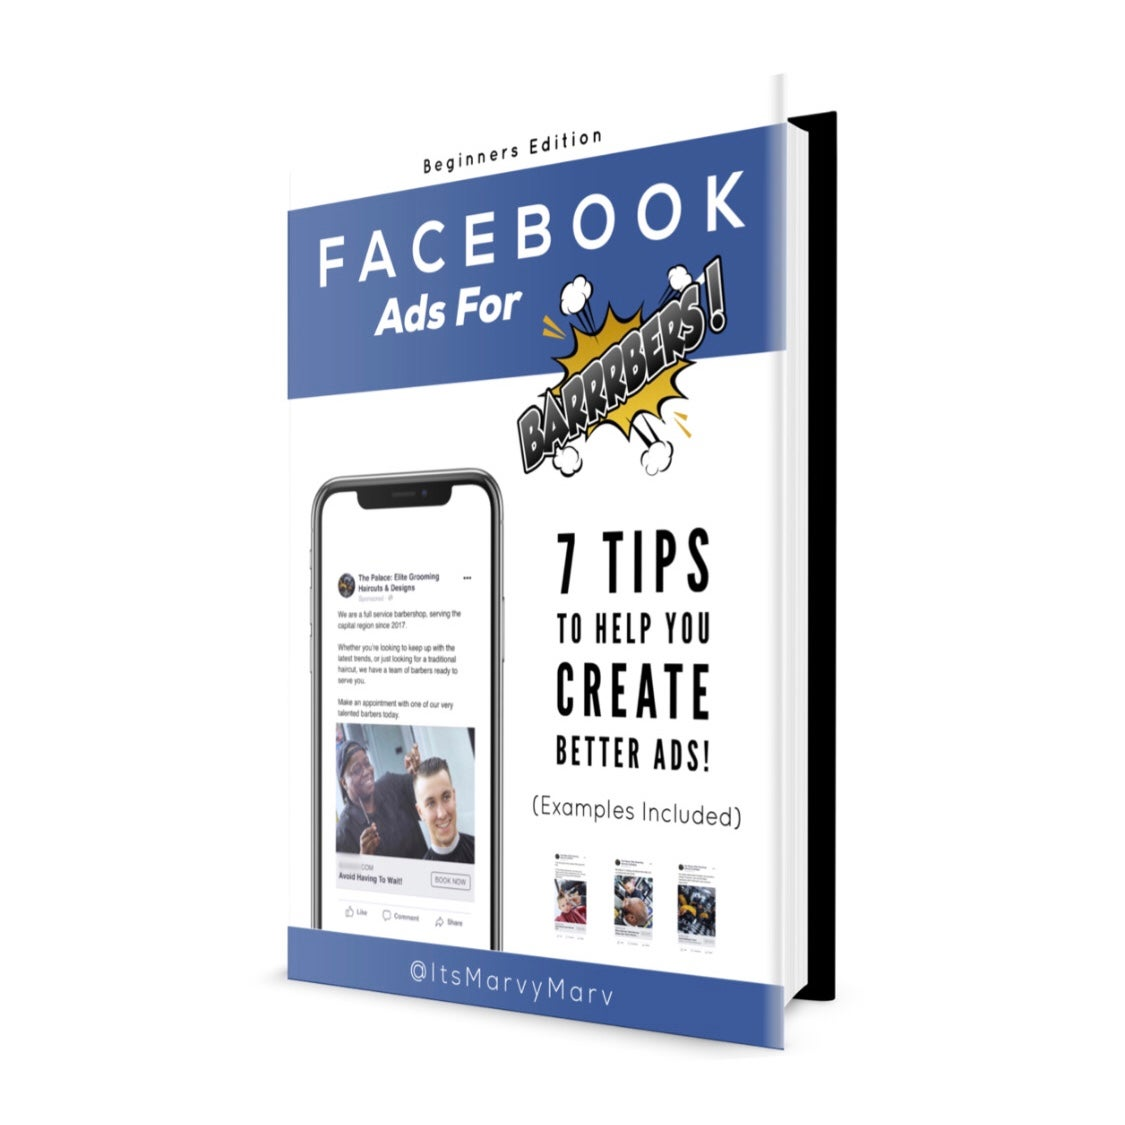 Image of *NEW RELEASE!* Facebook Ads For BARRRBERS! eBook